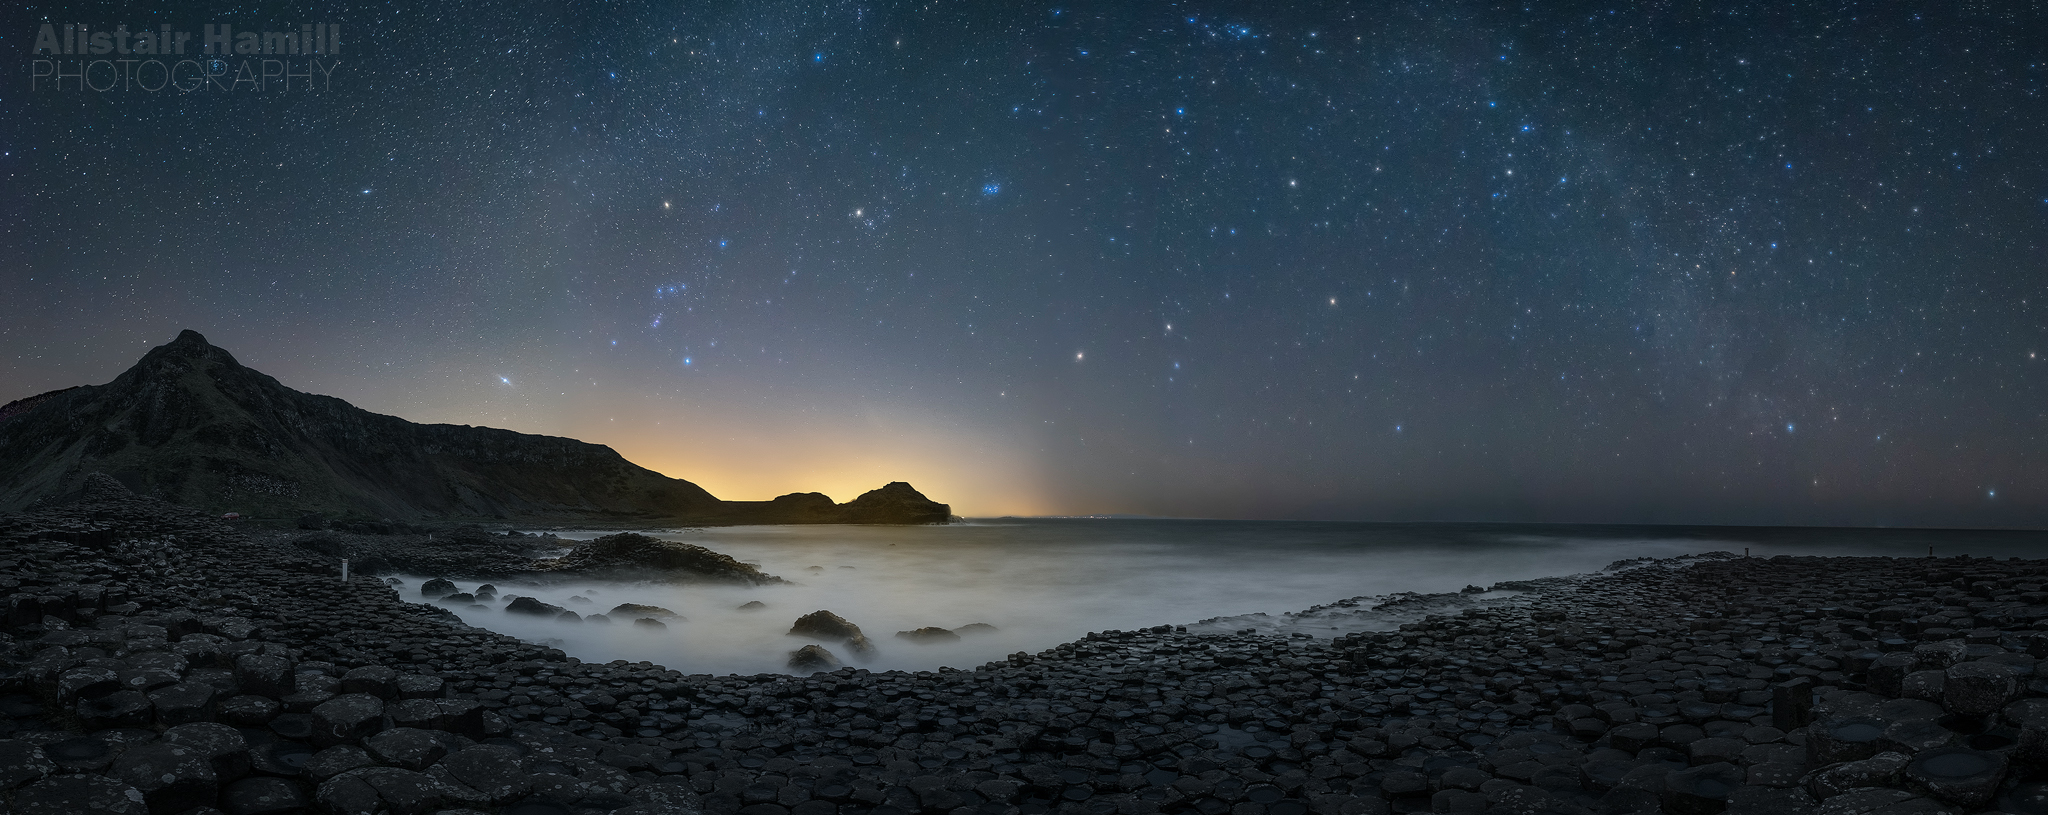 The winter Milky Way arcs above the Giant's Causeway